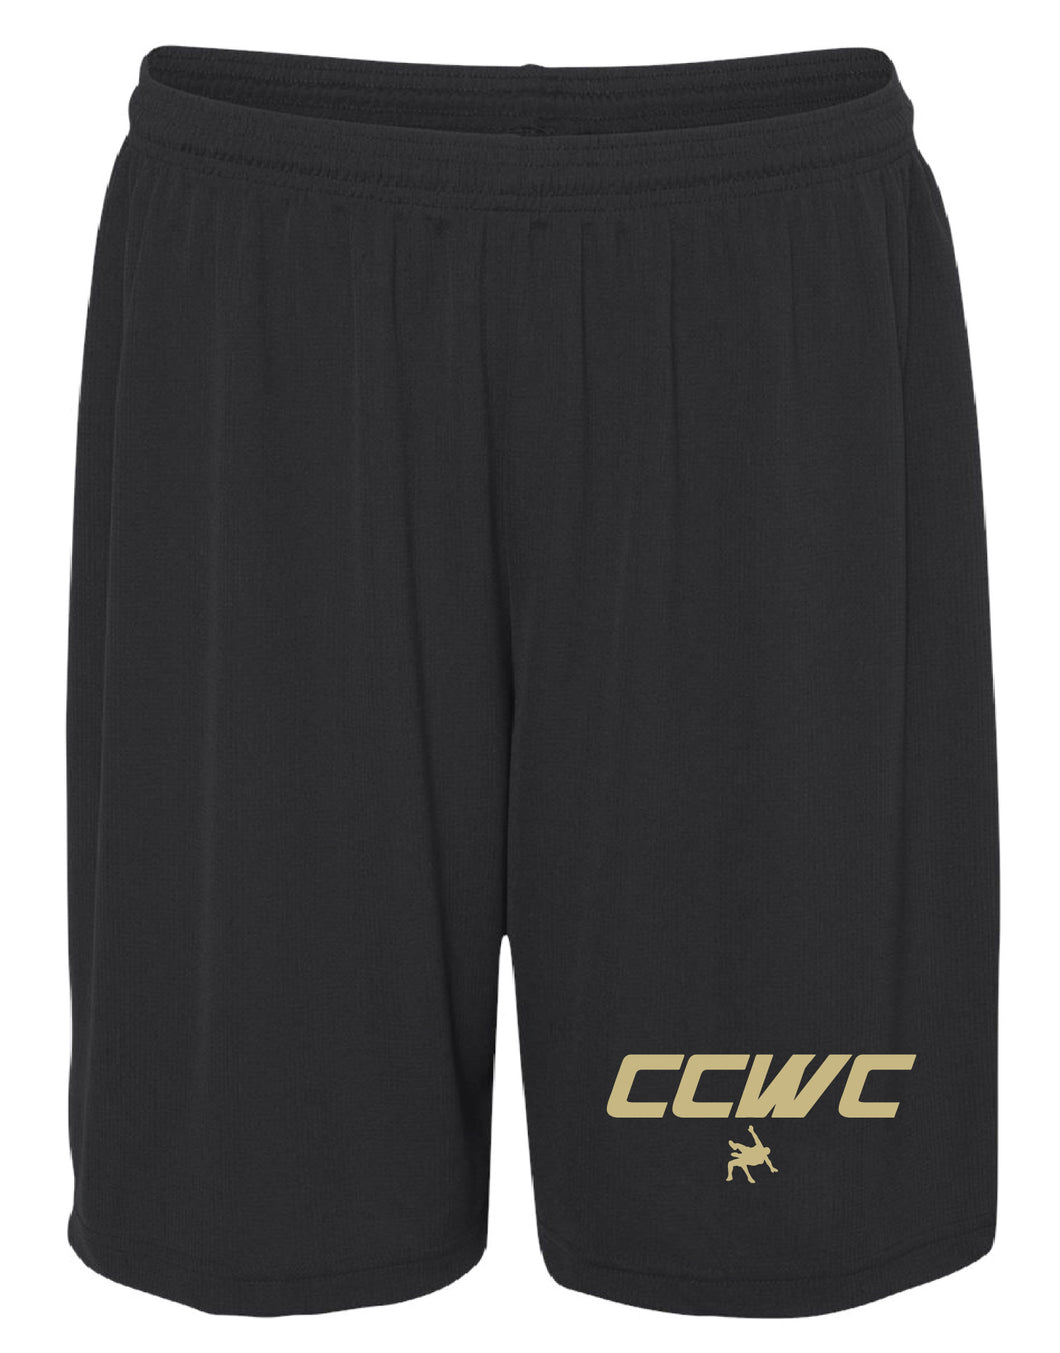 CCWC Tech Shorts - 5KounT